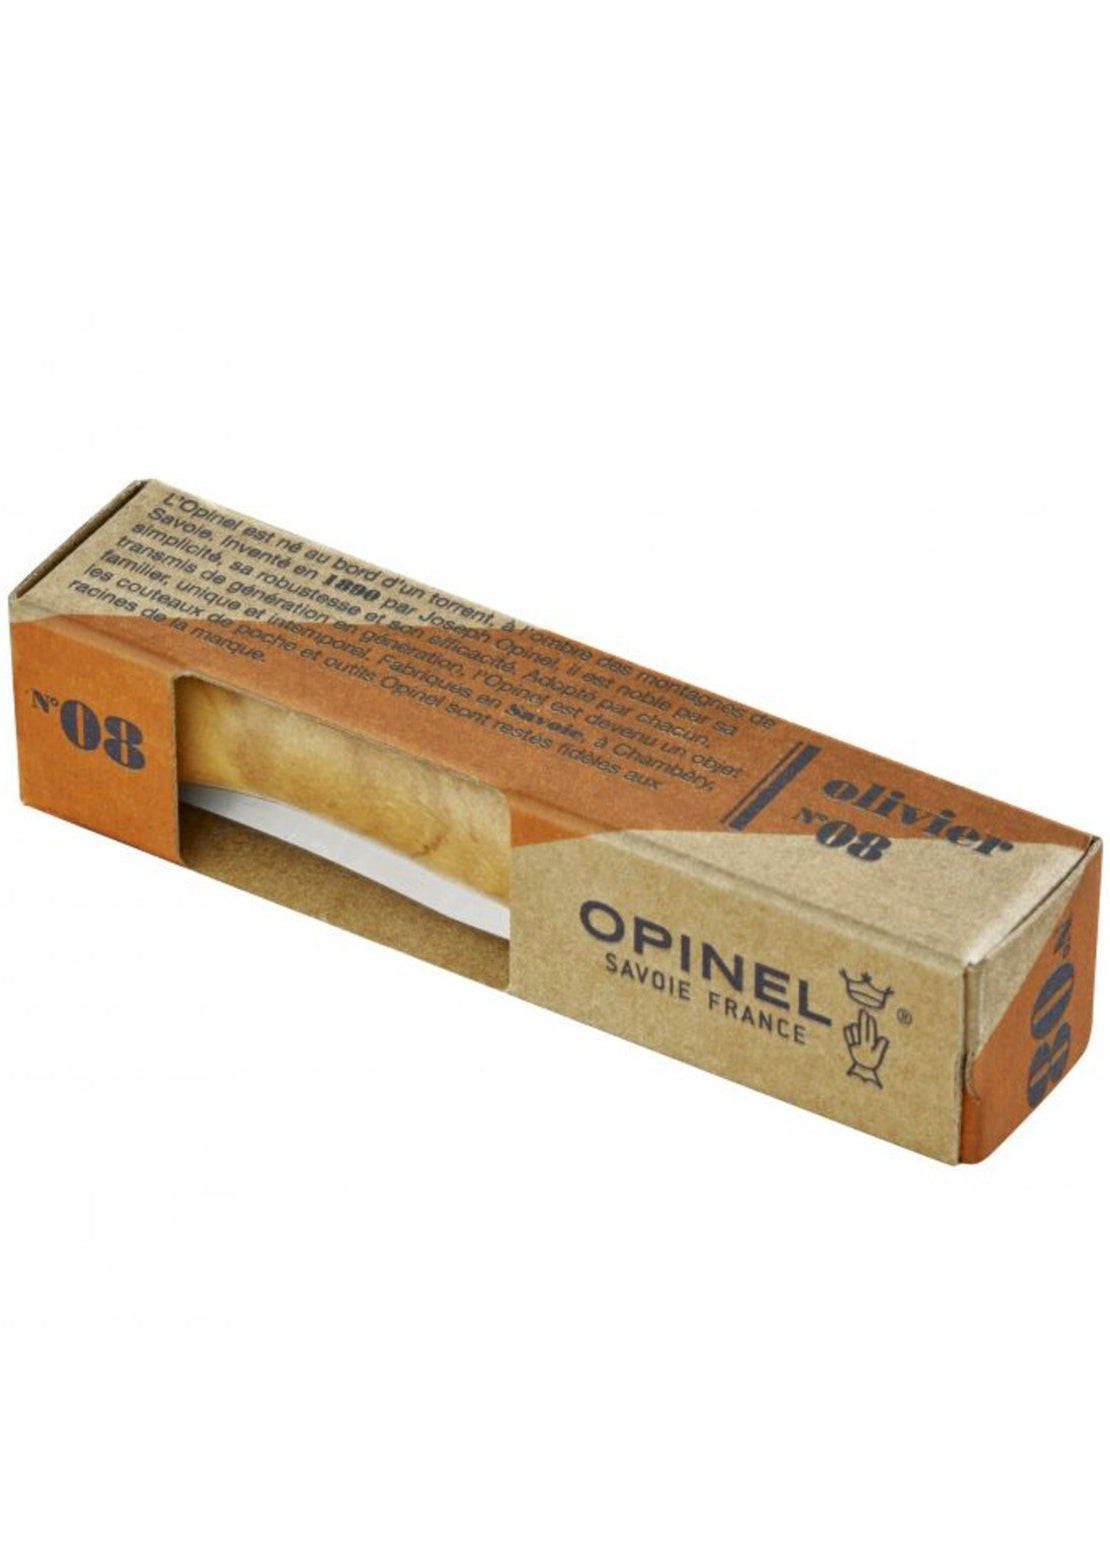 Opinel Tradition N°08 Luxury Olivewood Stainless Steel Knife Olive Wood